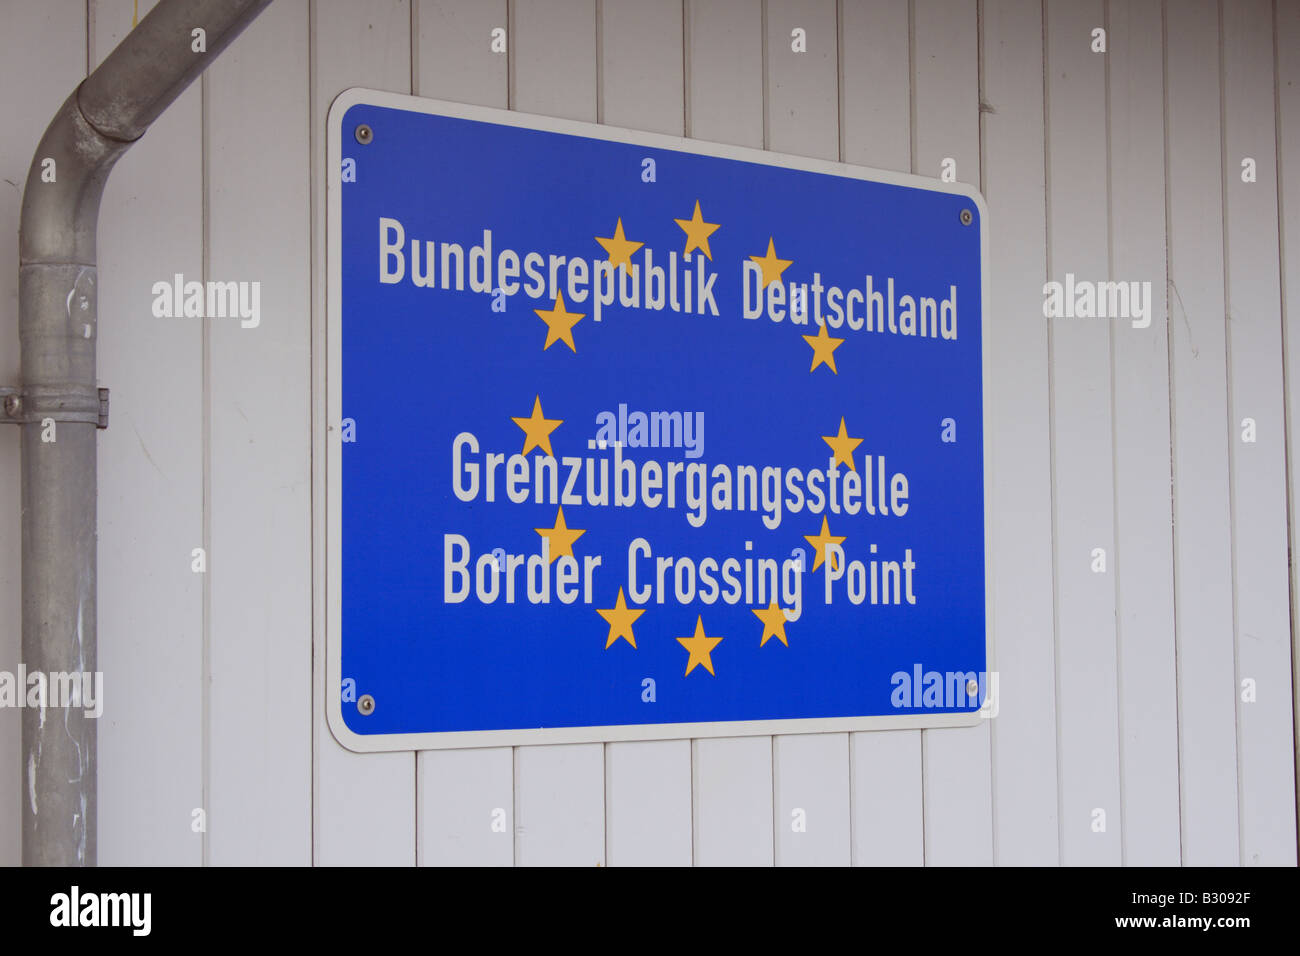 border crossing point sign at the pier of Seebruecke Heringsdorf, Baltic Sea, Germany, Europe Photo by Willy Matheisl - Stock Image